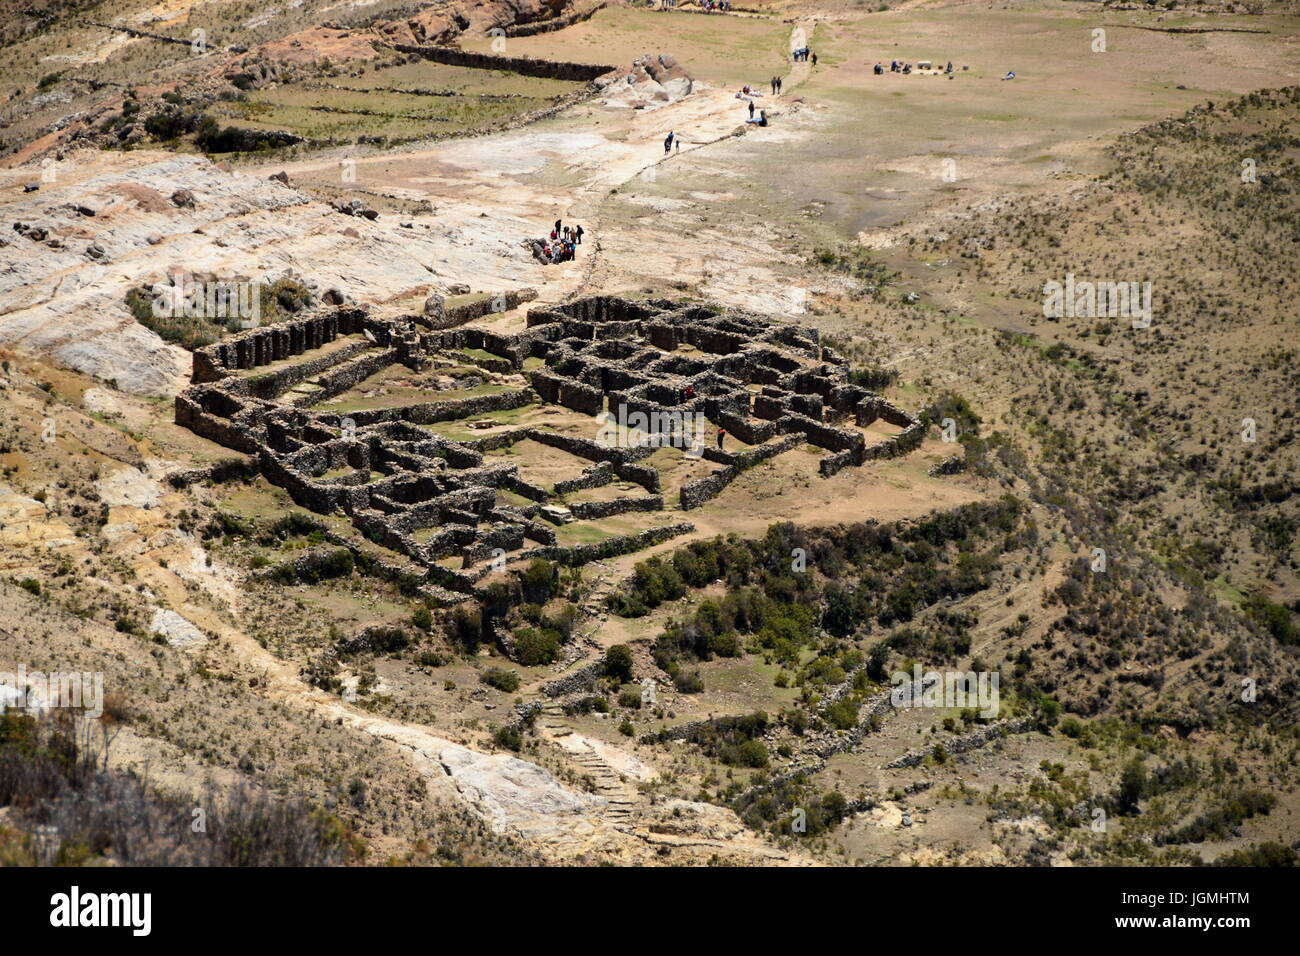 Stunning view of the Chincana Inca Ruins on the Isla del Sol on Lake Titicaca - Stock Image